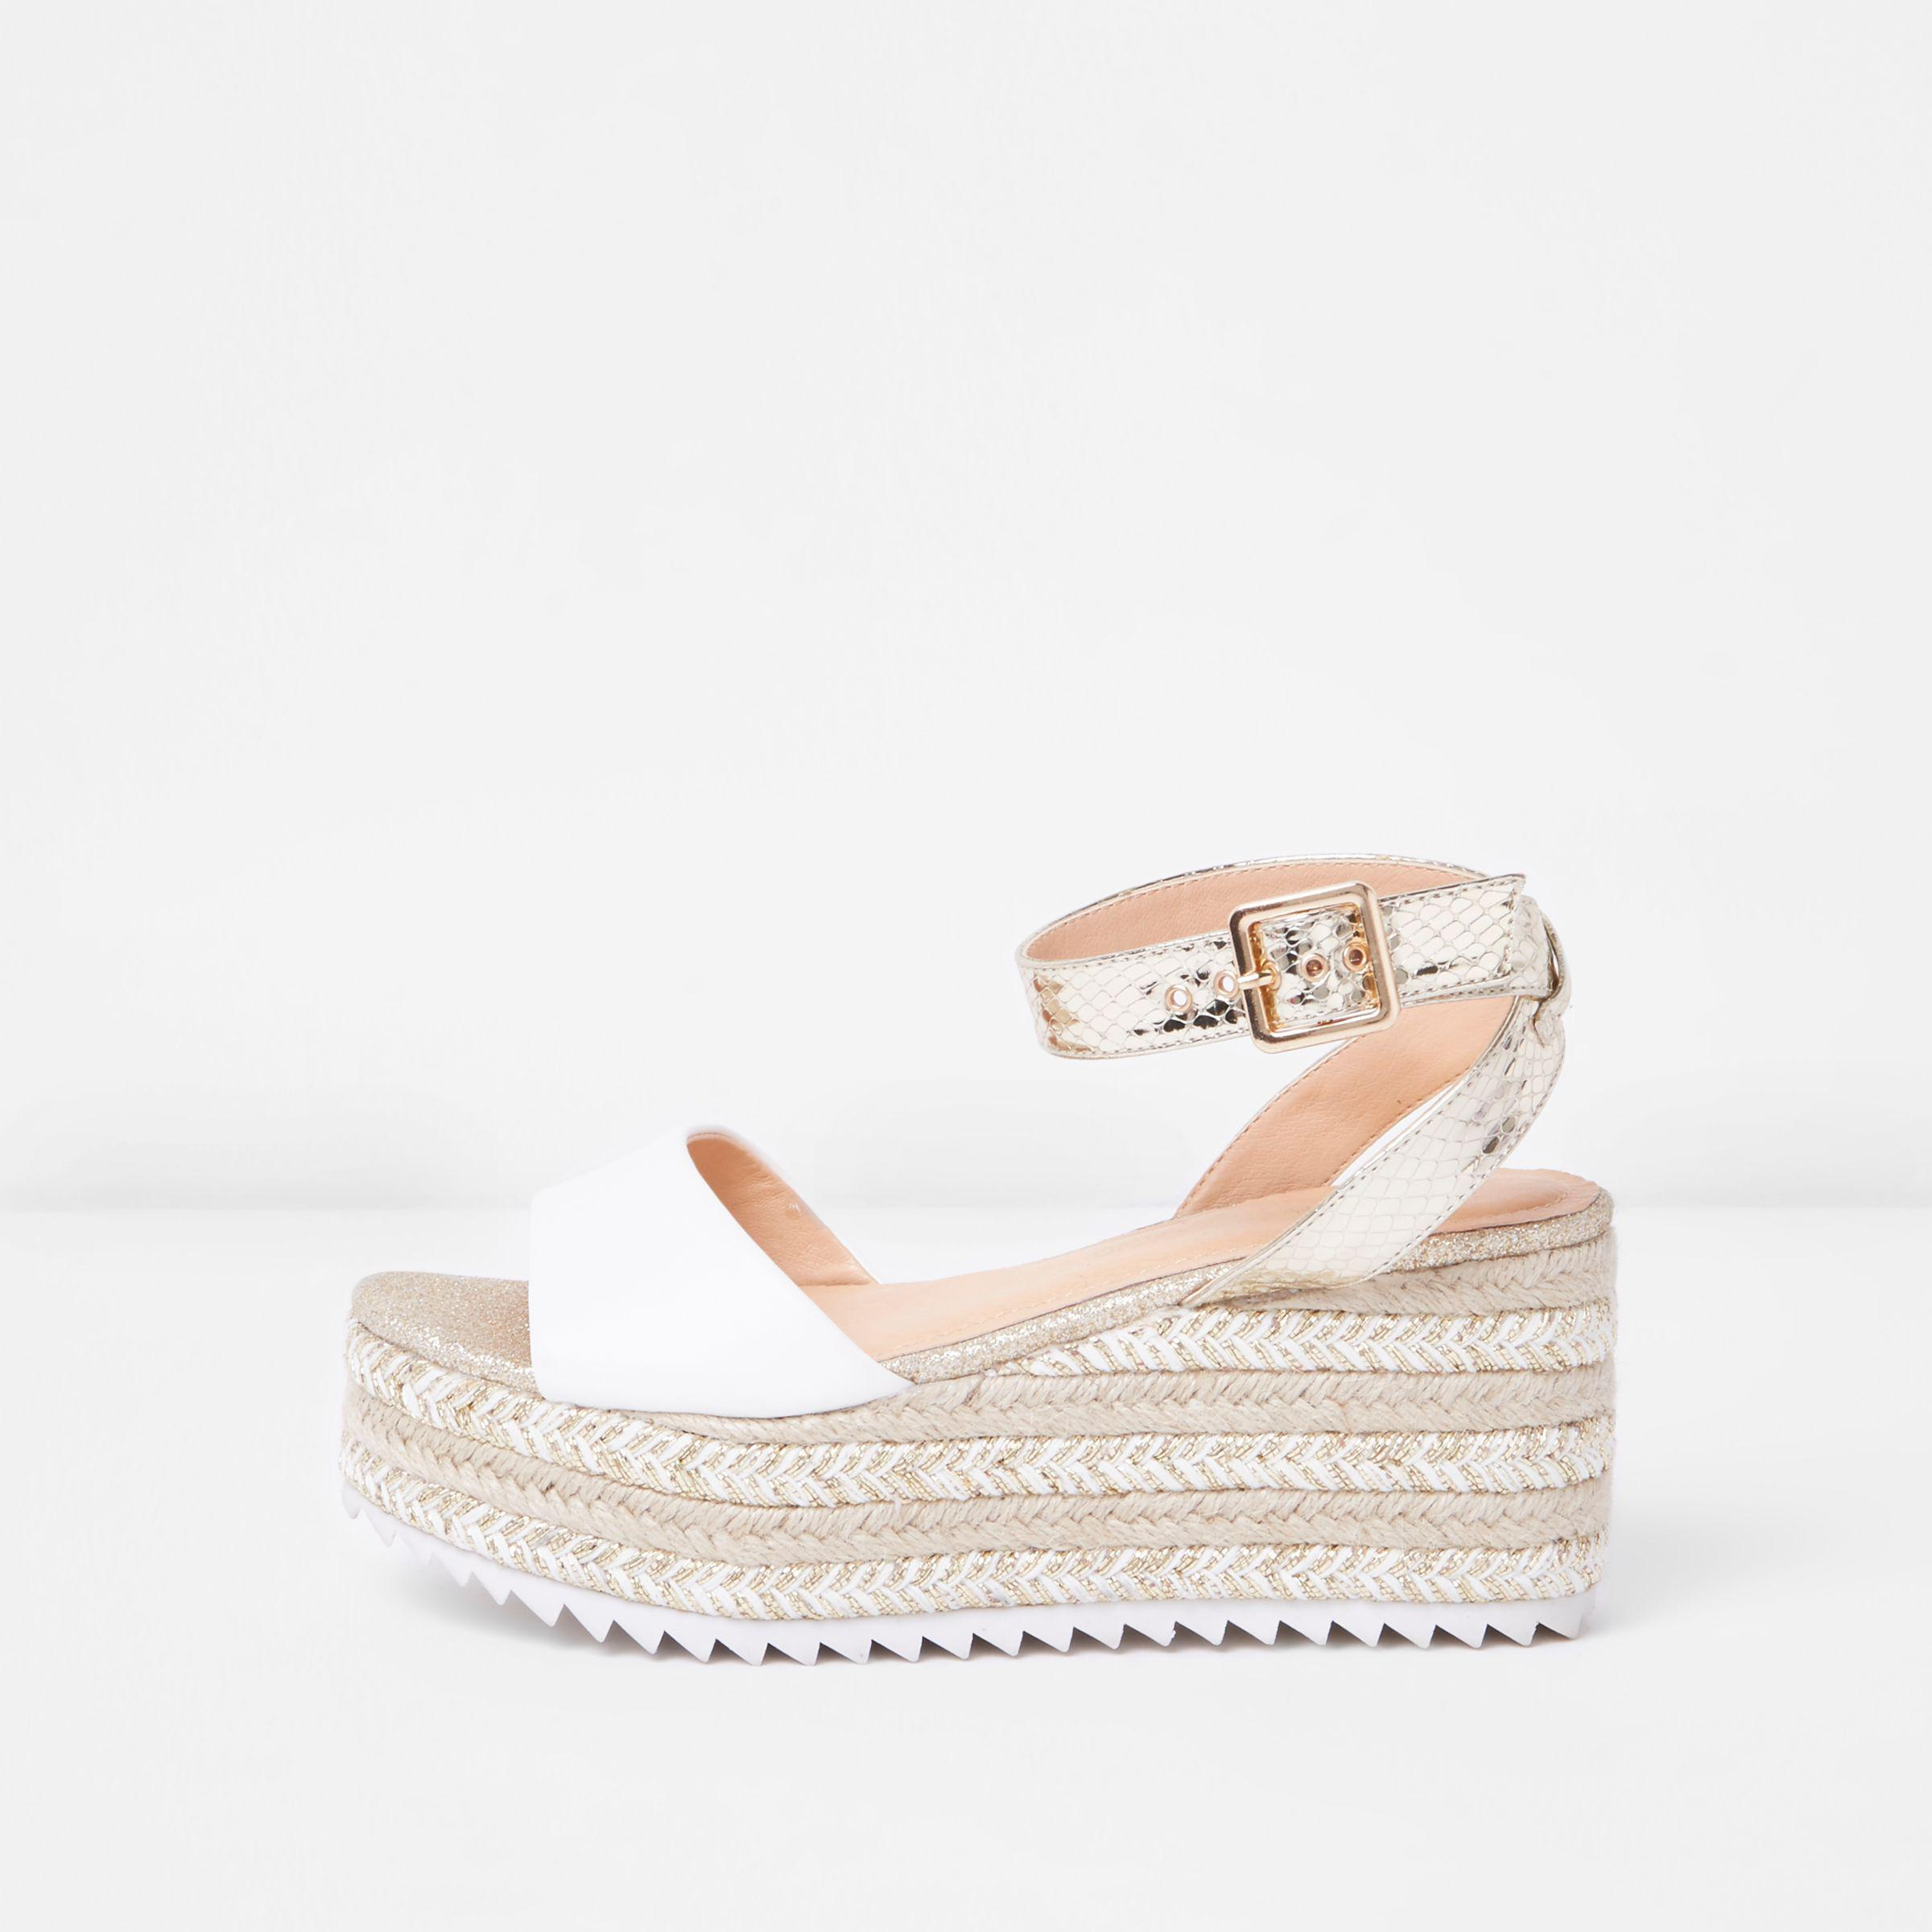 e0541ef8f4 River Island Gold Two Part Espadrille Wedge Sandals in Metallic - Lyst